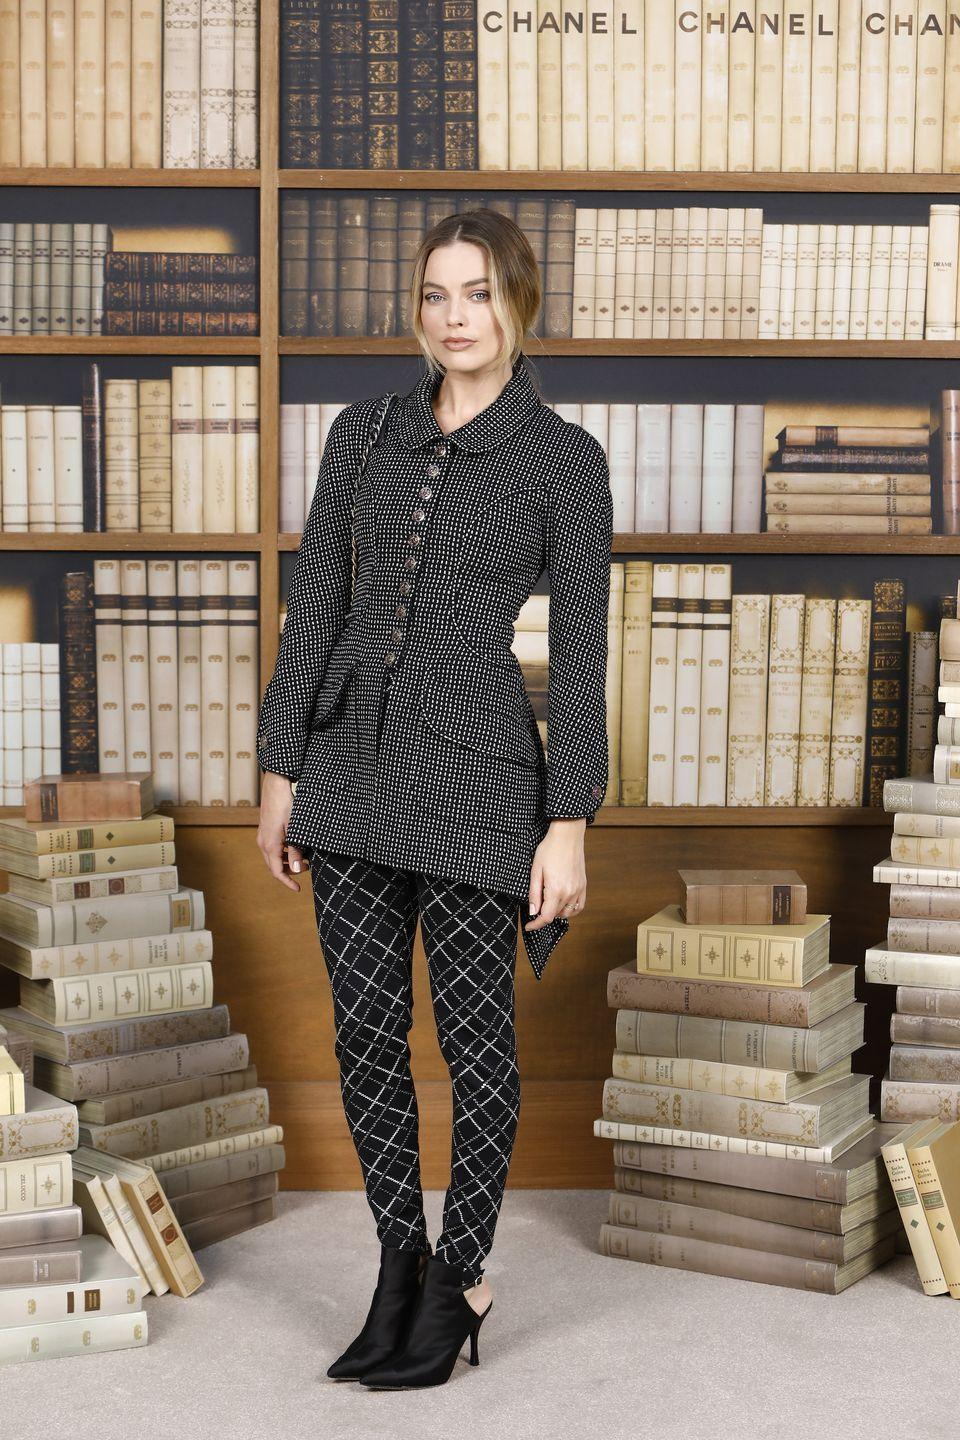 <p>Margot Robbie attends the Chanel photocall as part of Paris Fashion Week - Haute Couture Fall Winter 2020, wearing head to toe Chanel, obviously. </p>